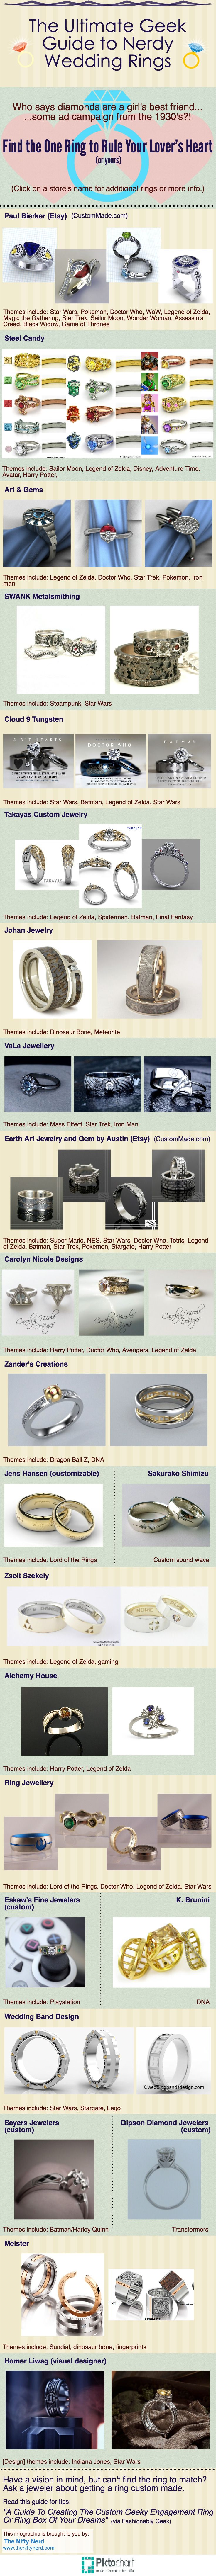 geek of rings wedding geeky search hyrule bands collections gifts geeks custommade for crest com